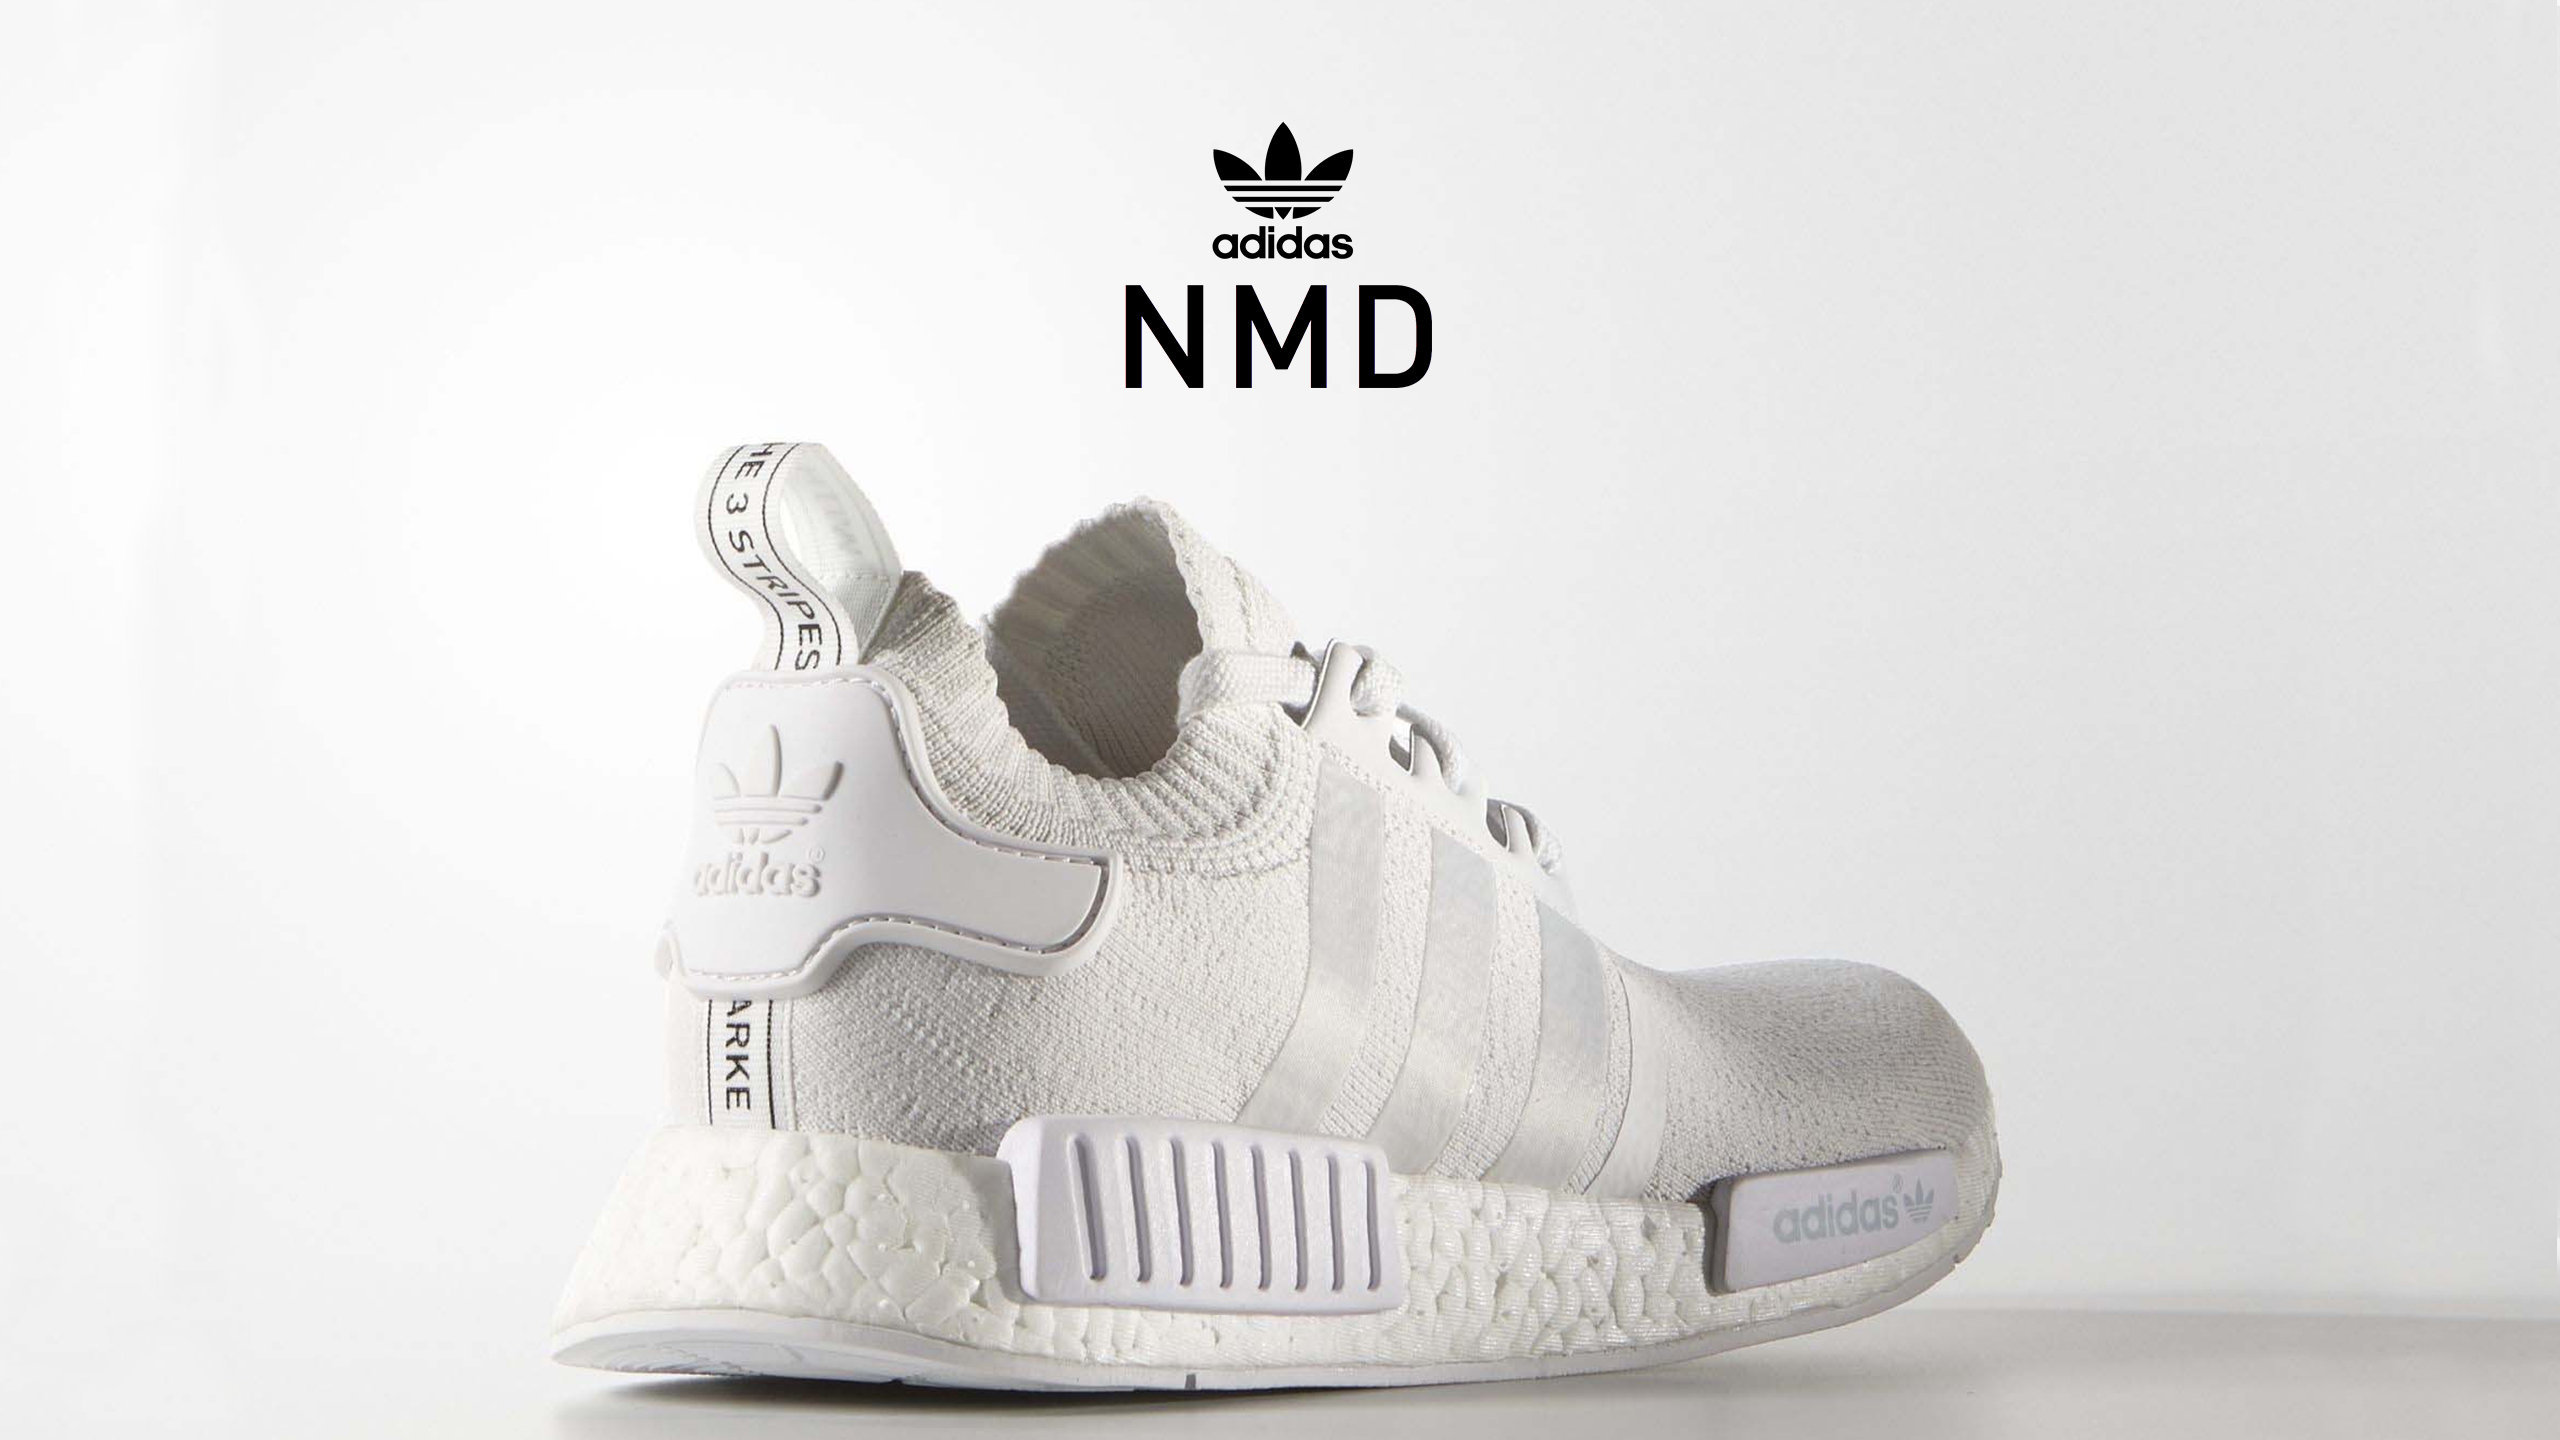 08ade767aad6 Adidas NMD Shoes Wallpaper - CopEmLegit